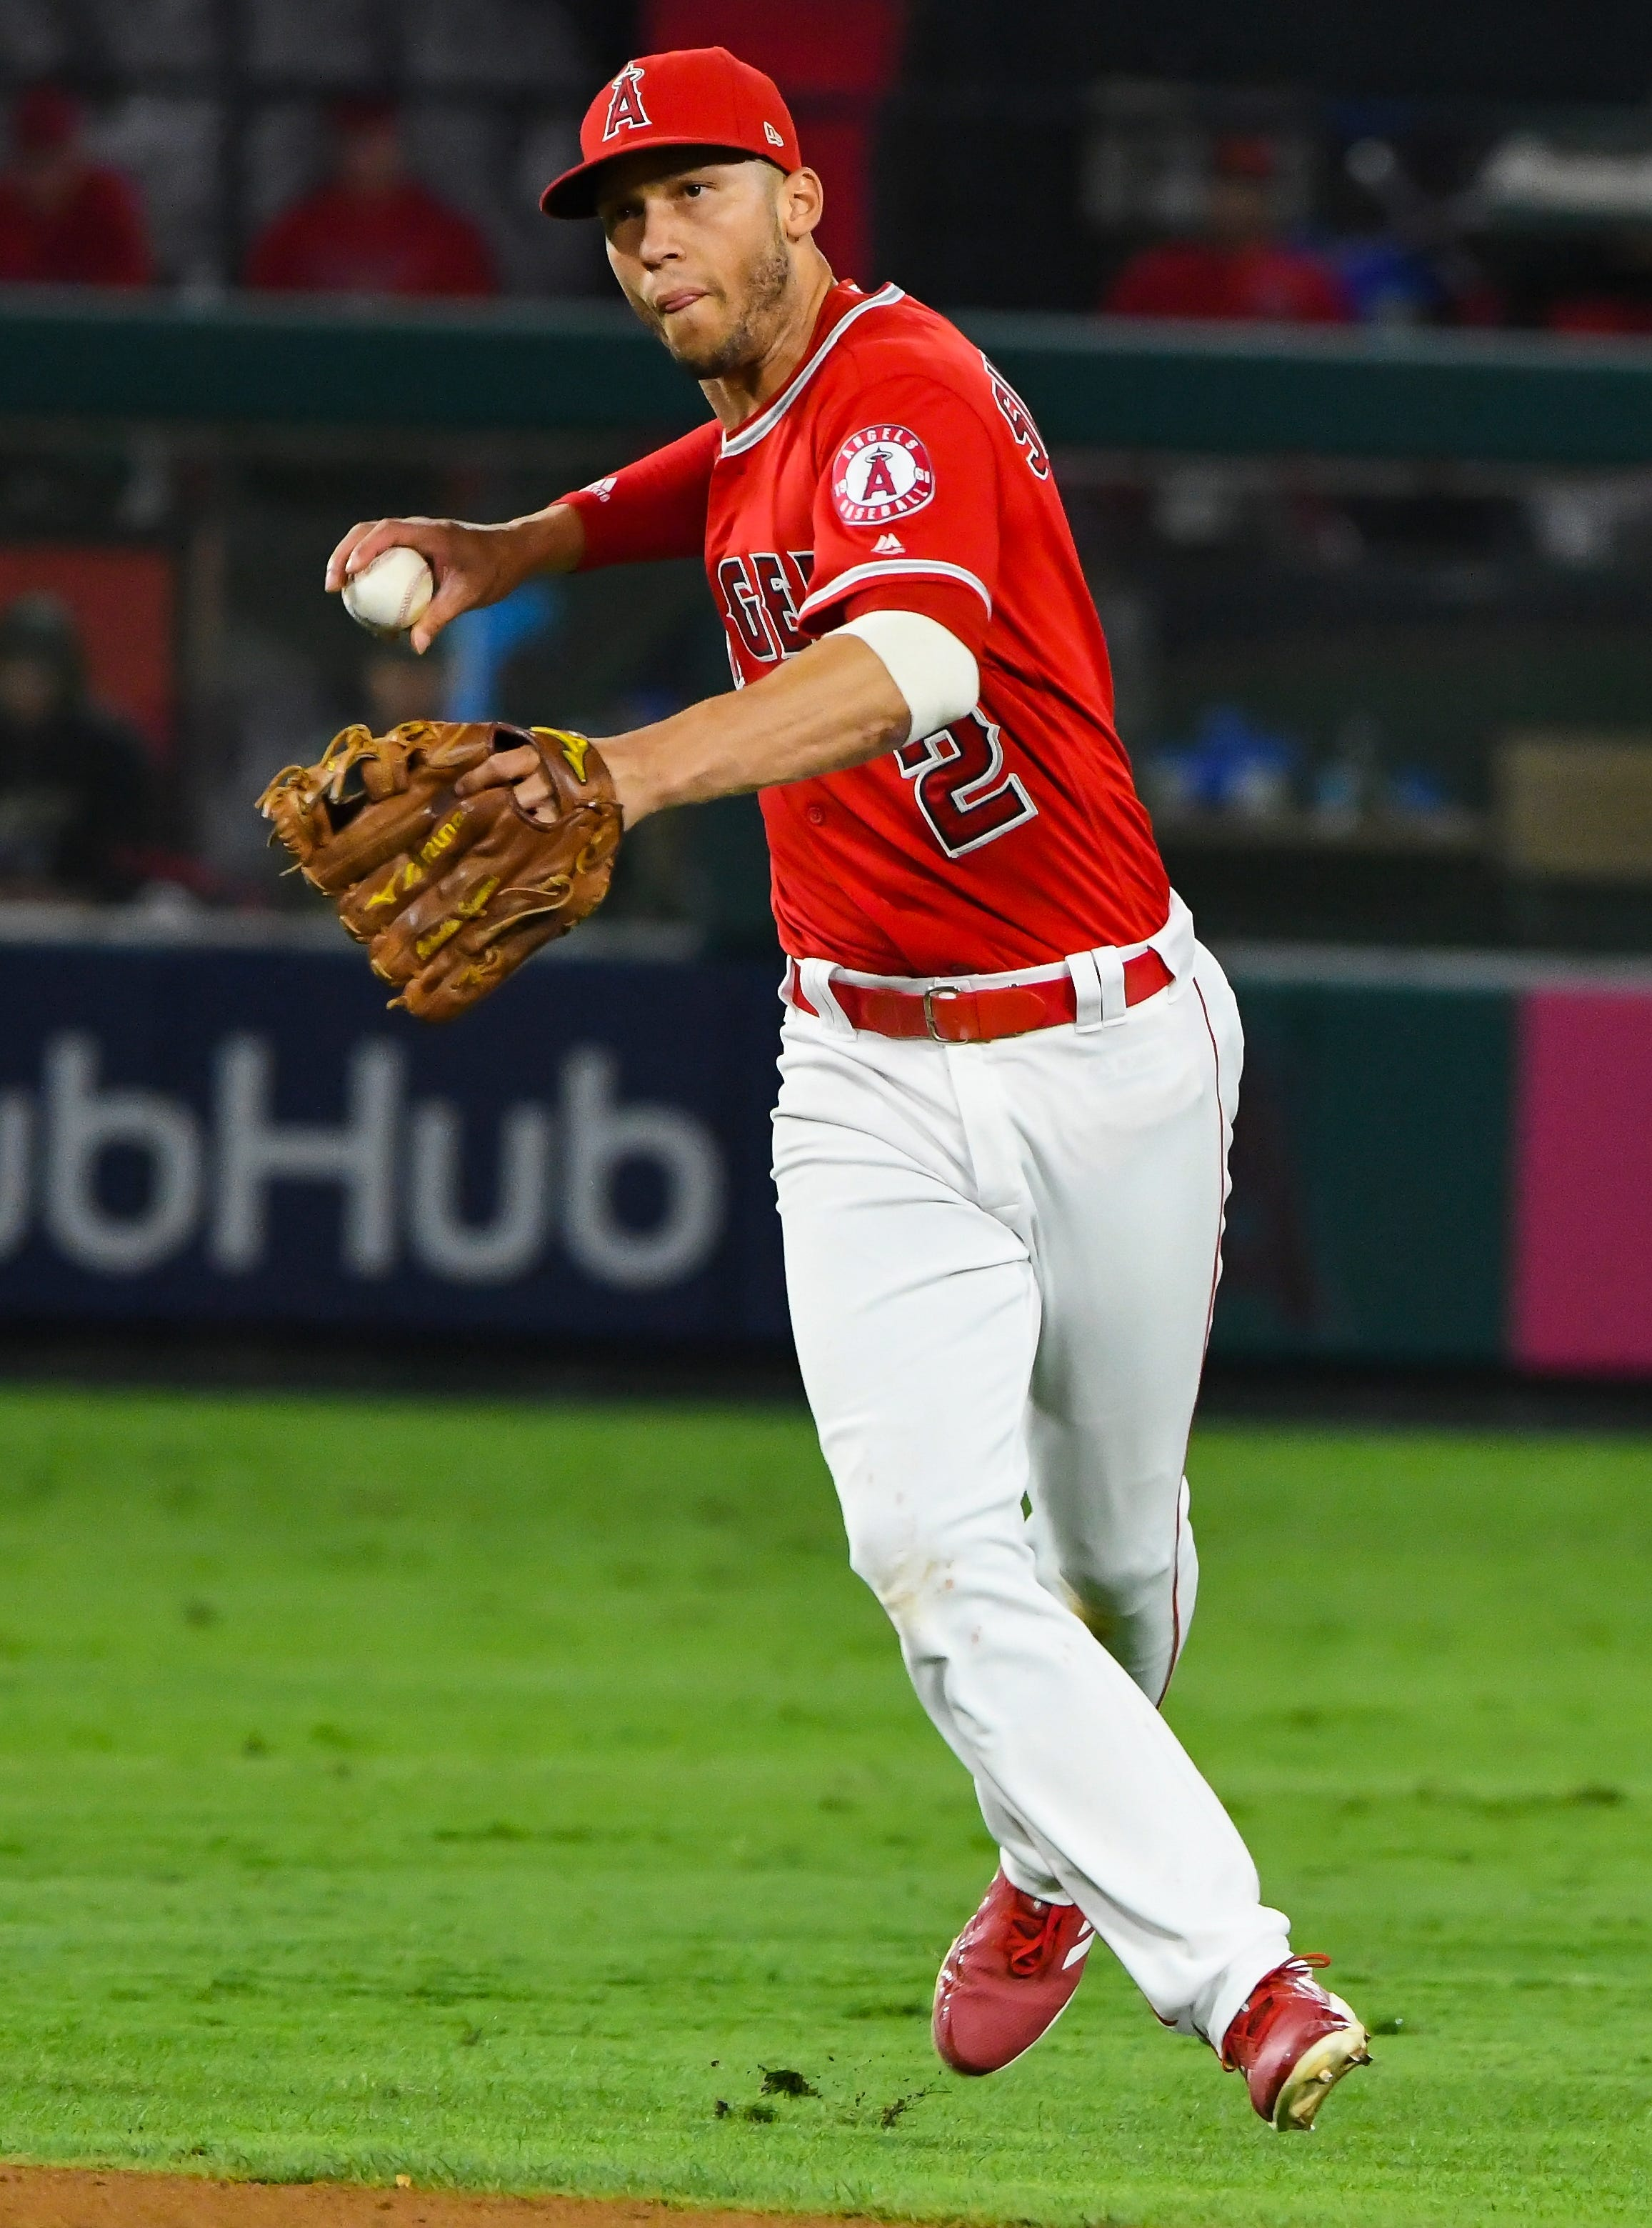 Gold Glove shortstop Andrelton Simmons reveals 2020 opt-out was due to battle with depression